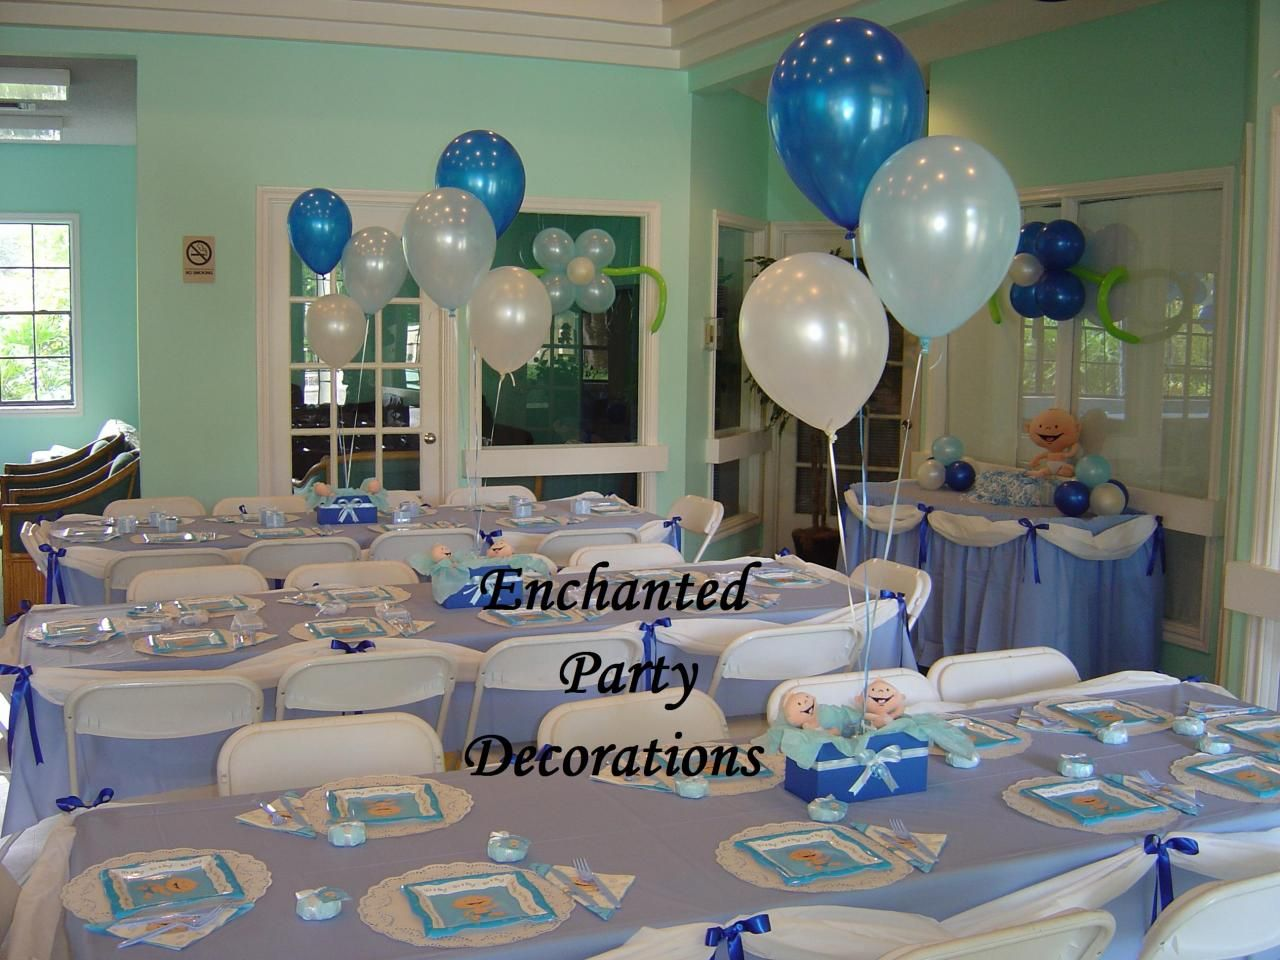 Baby Boy Shower Decorations Part - 26: 350 Best Boy Baby Shower Ideas Images On Pinterest | Boy Baby Showers,  Parties And Shower Ideas